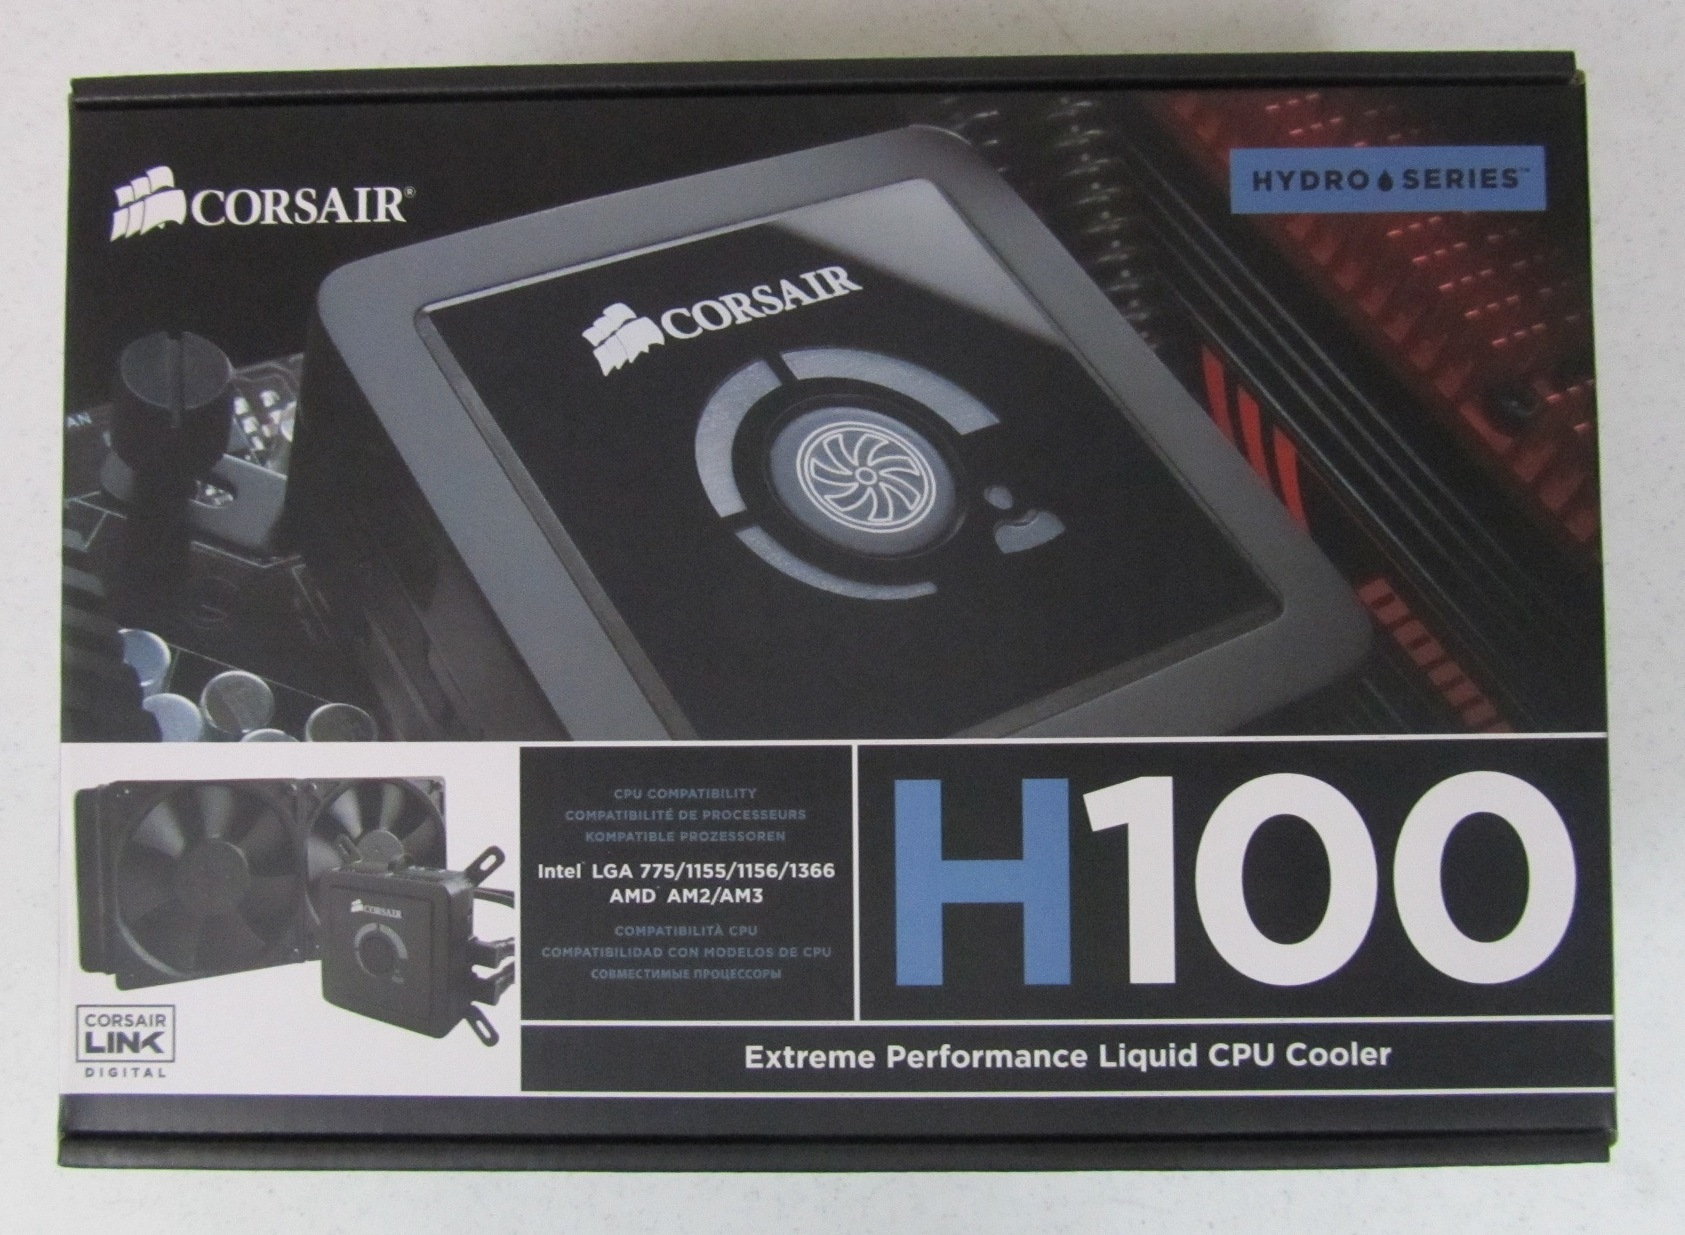 How to Install the Hydro Series H100